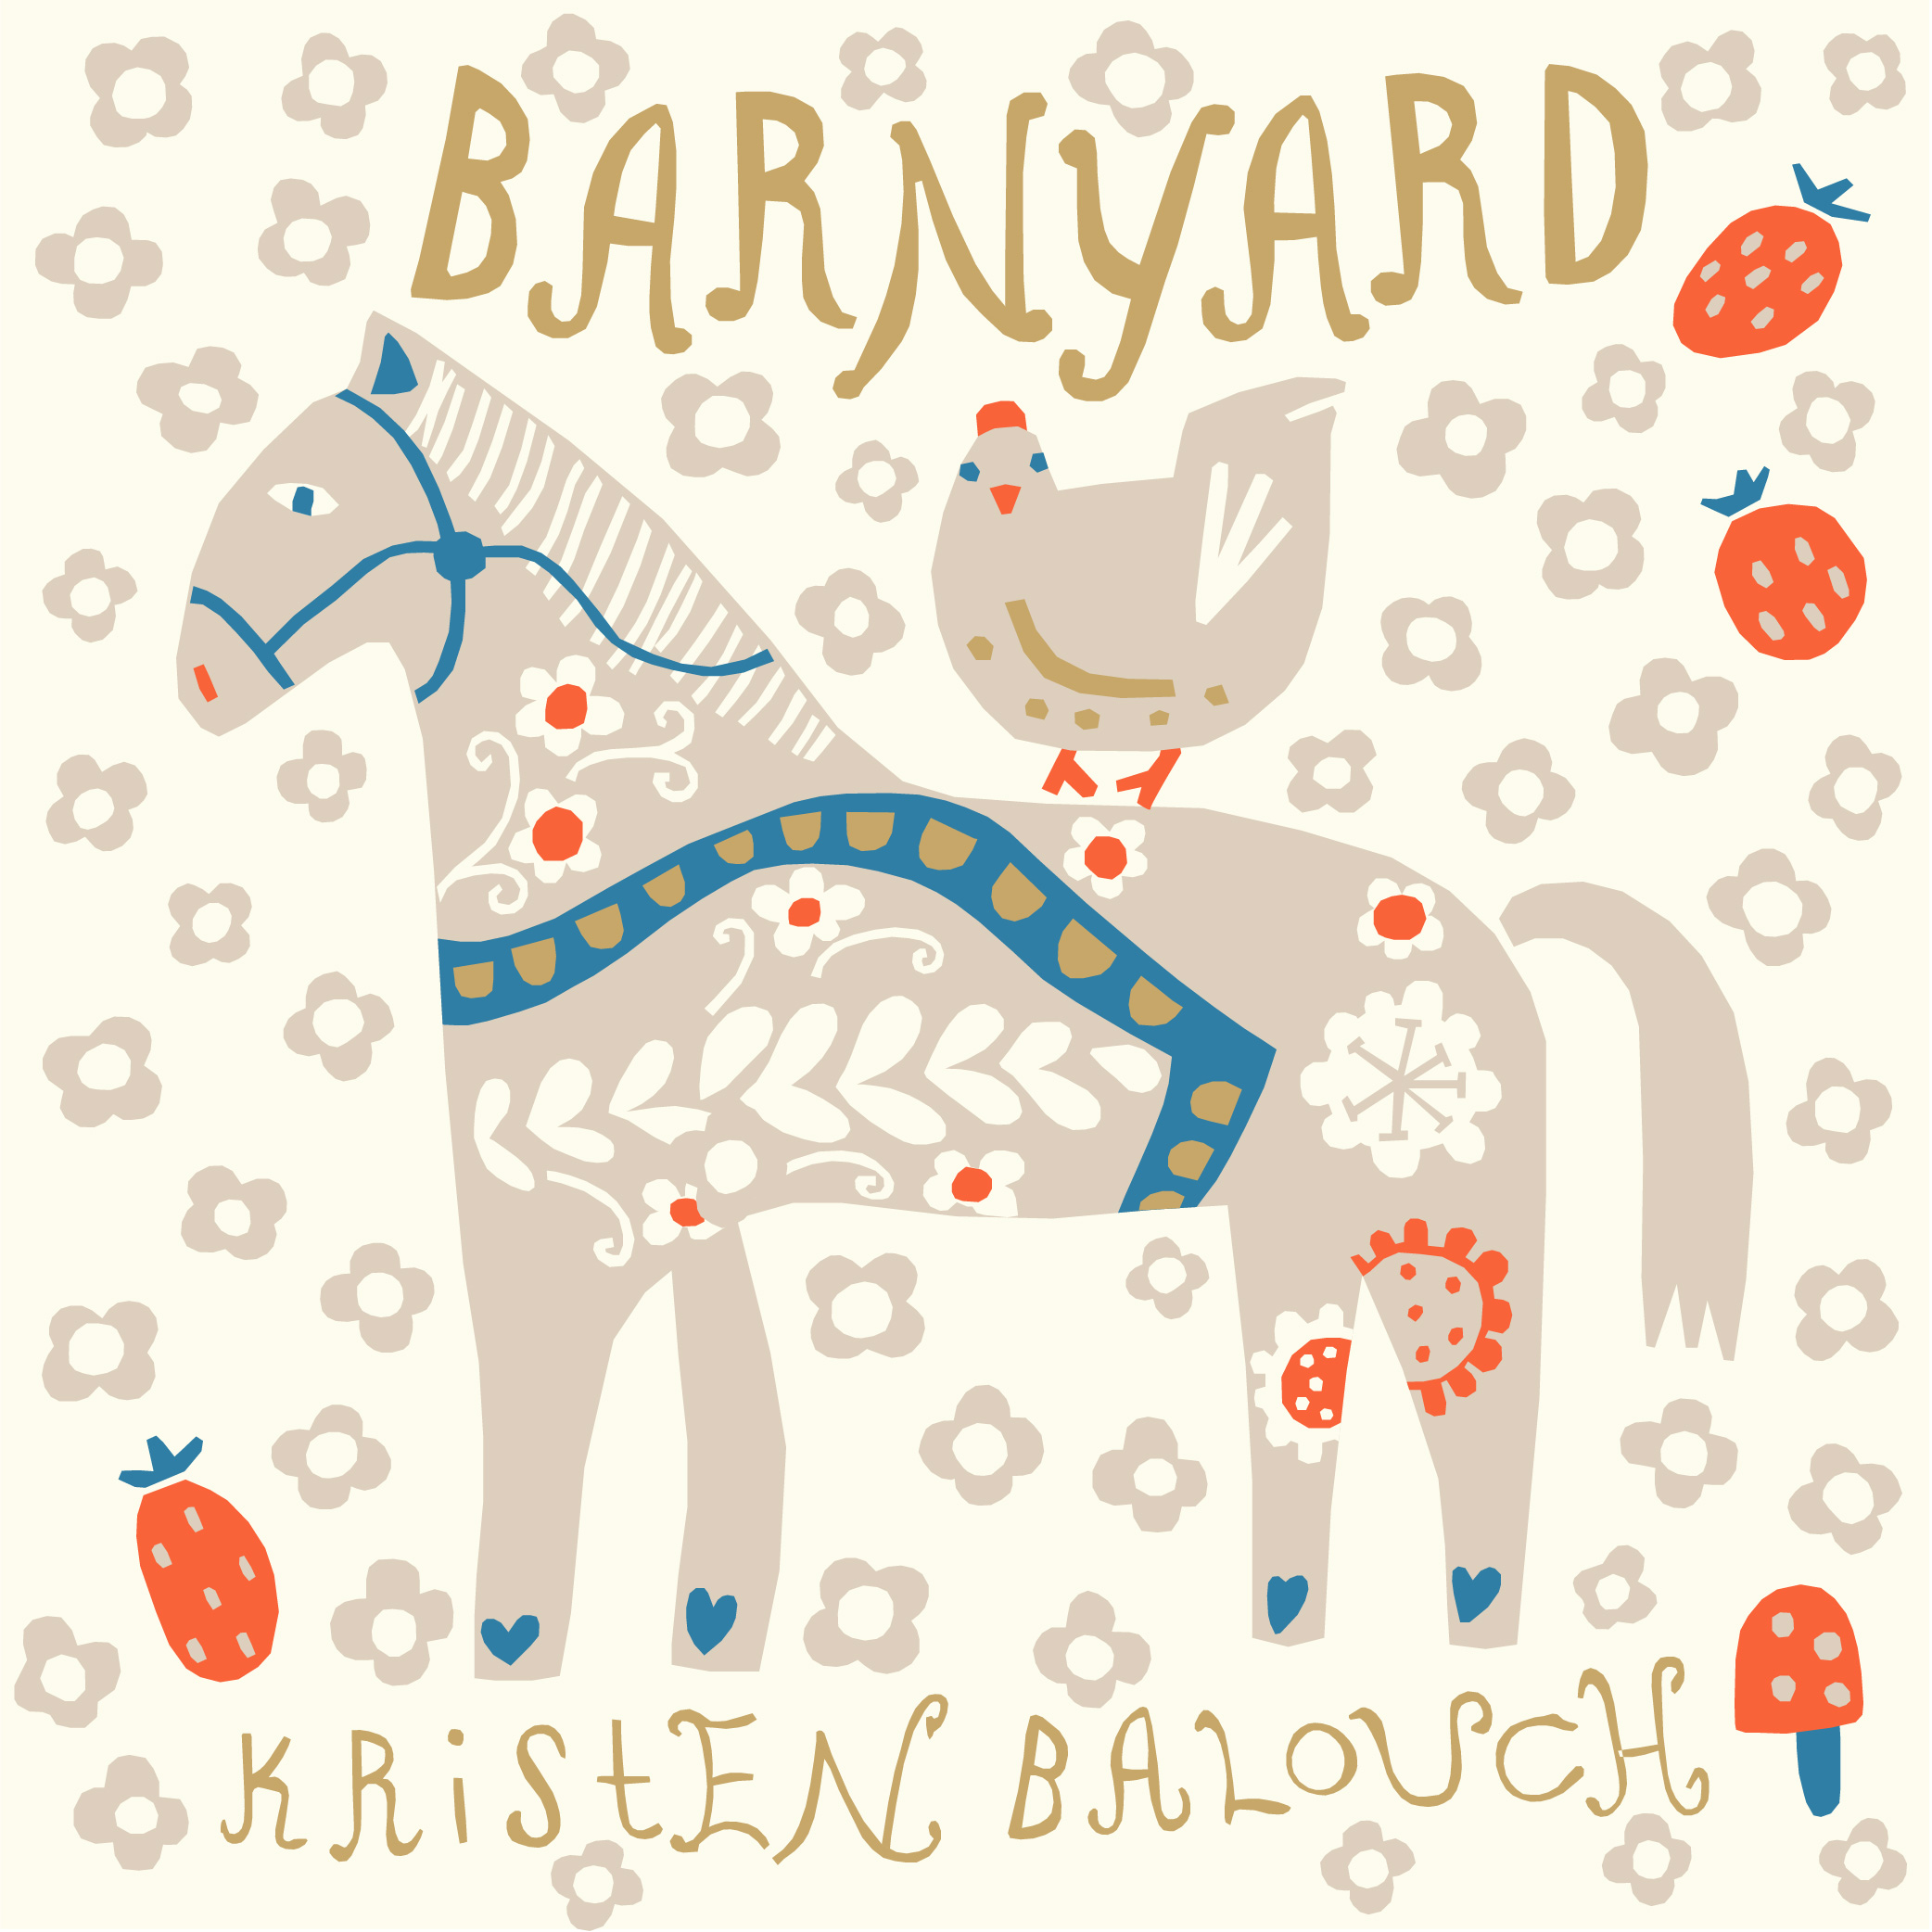 Barnyard by Kirsten Balouch Case Pack, 15 Yard Bolts